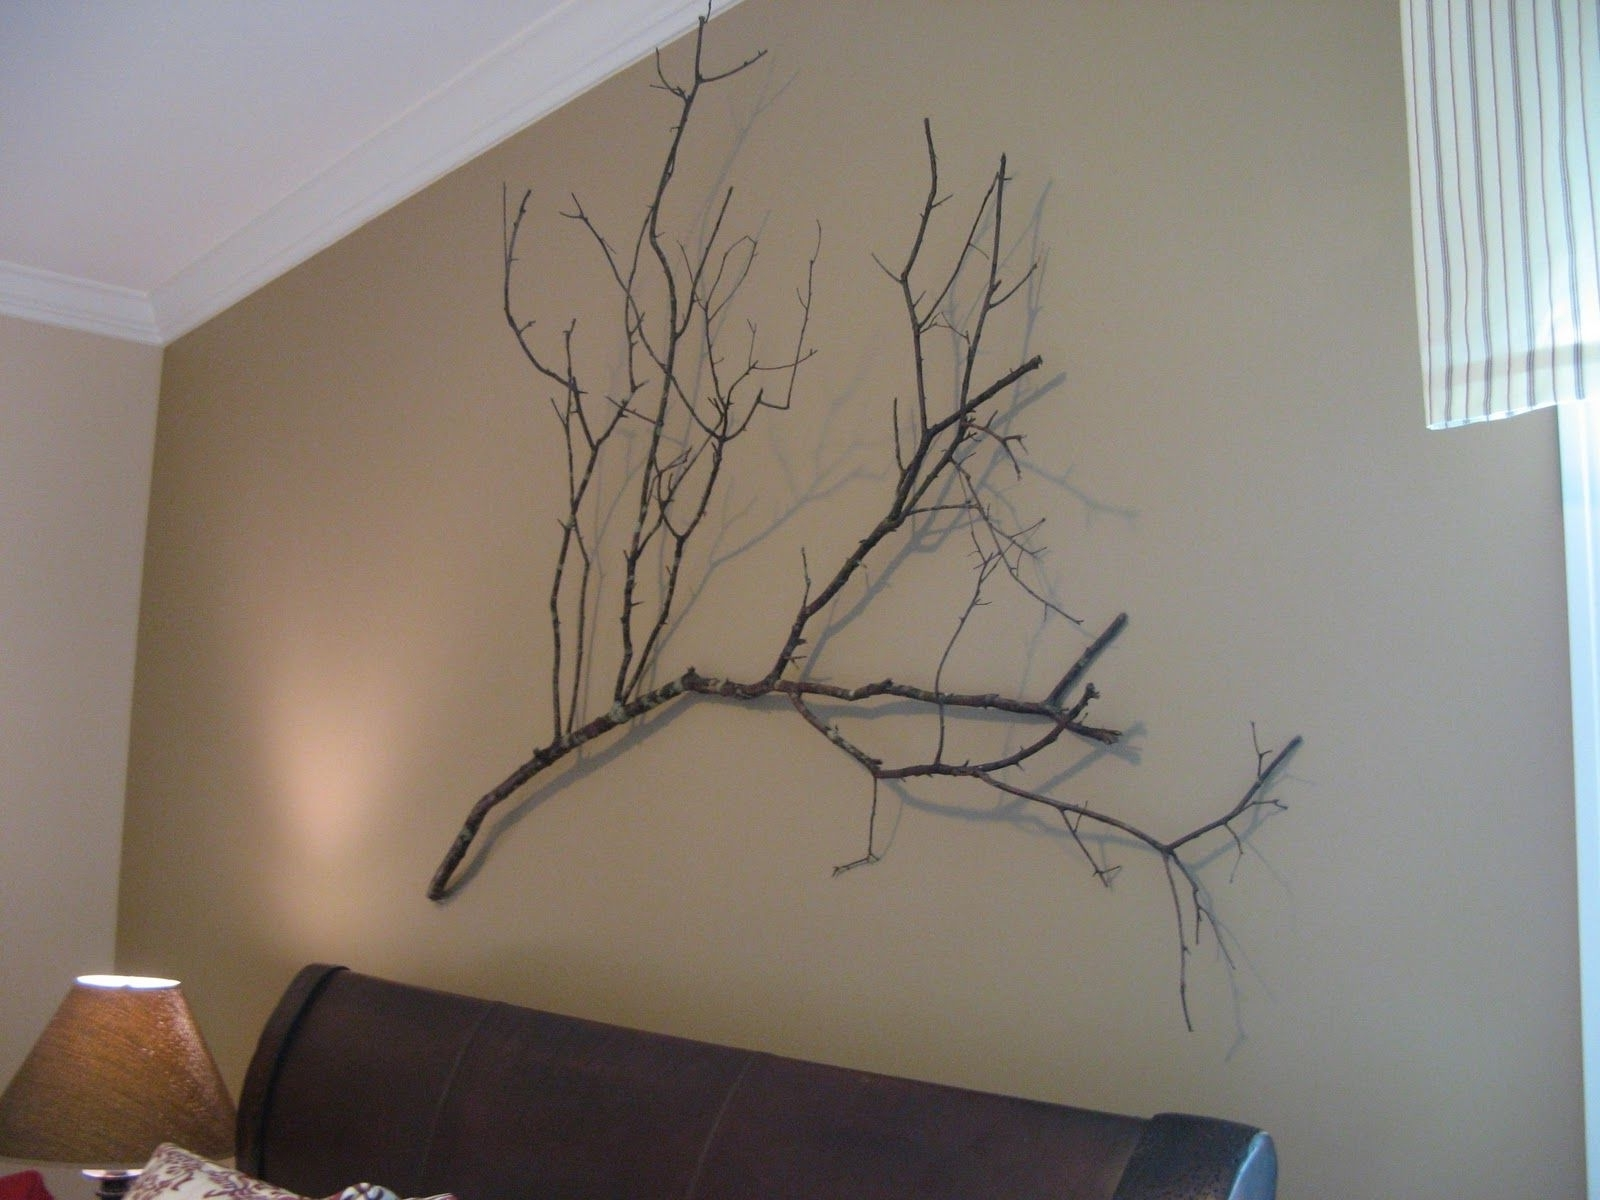 Crate And Barrel Wall Art Regarding 2017 Tree Branch Wall Art, Crate And Barrel Knock Off, Rustic Wall Art (View 4 of 20)